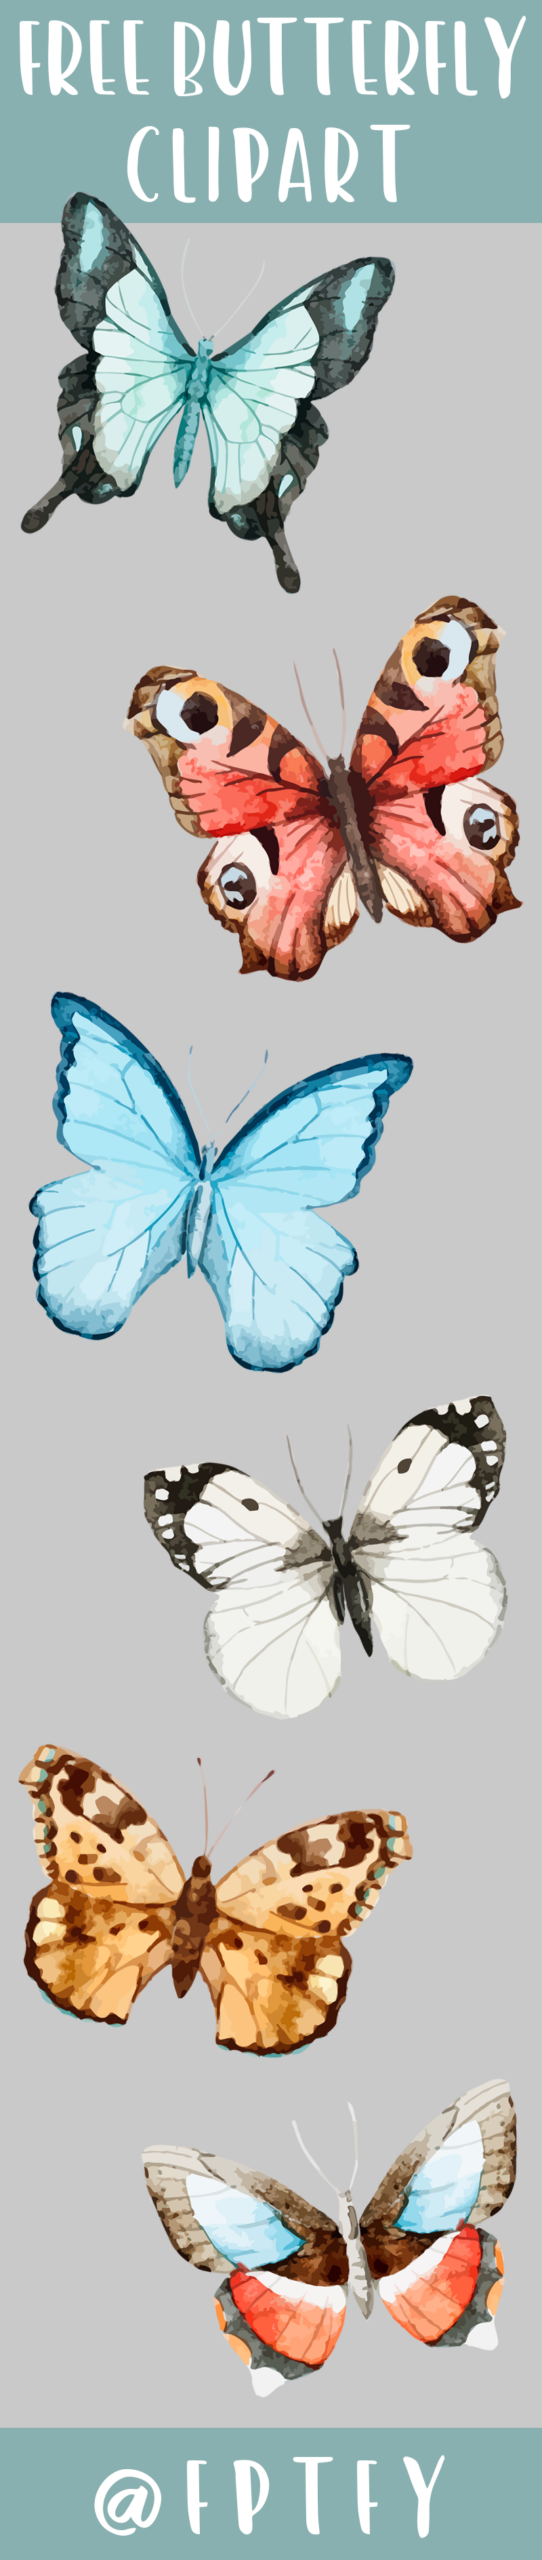 Free Butterfly Clipart-CU ok